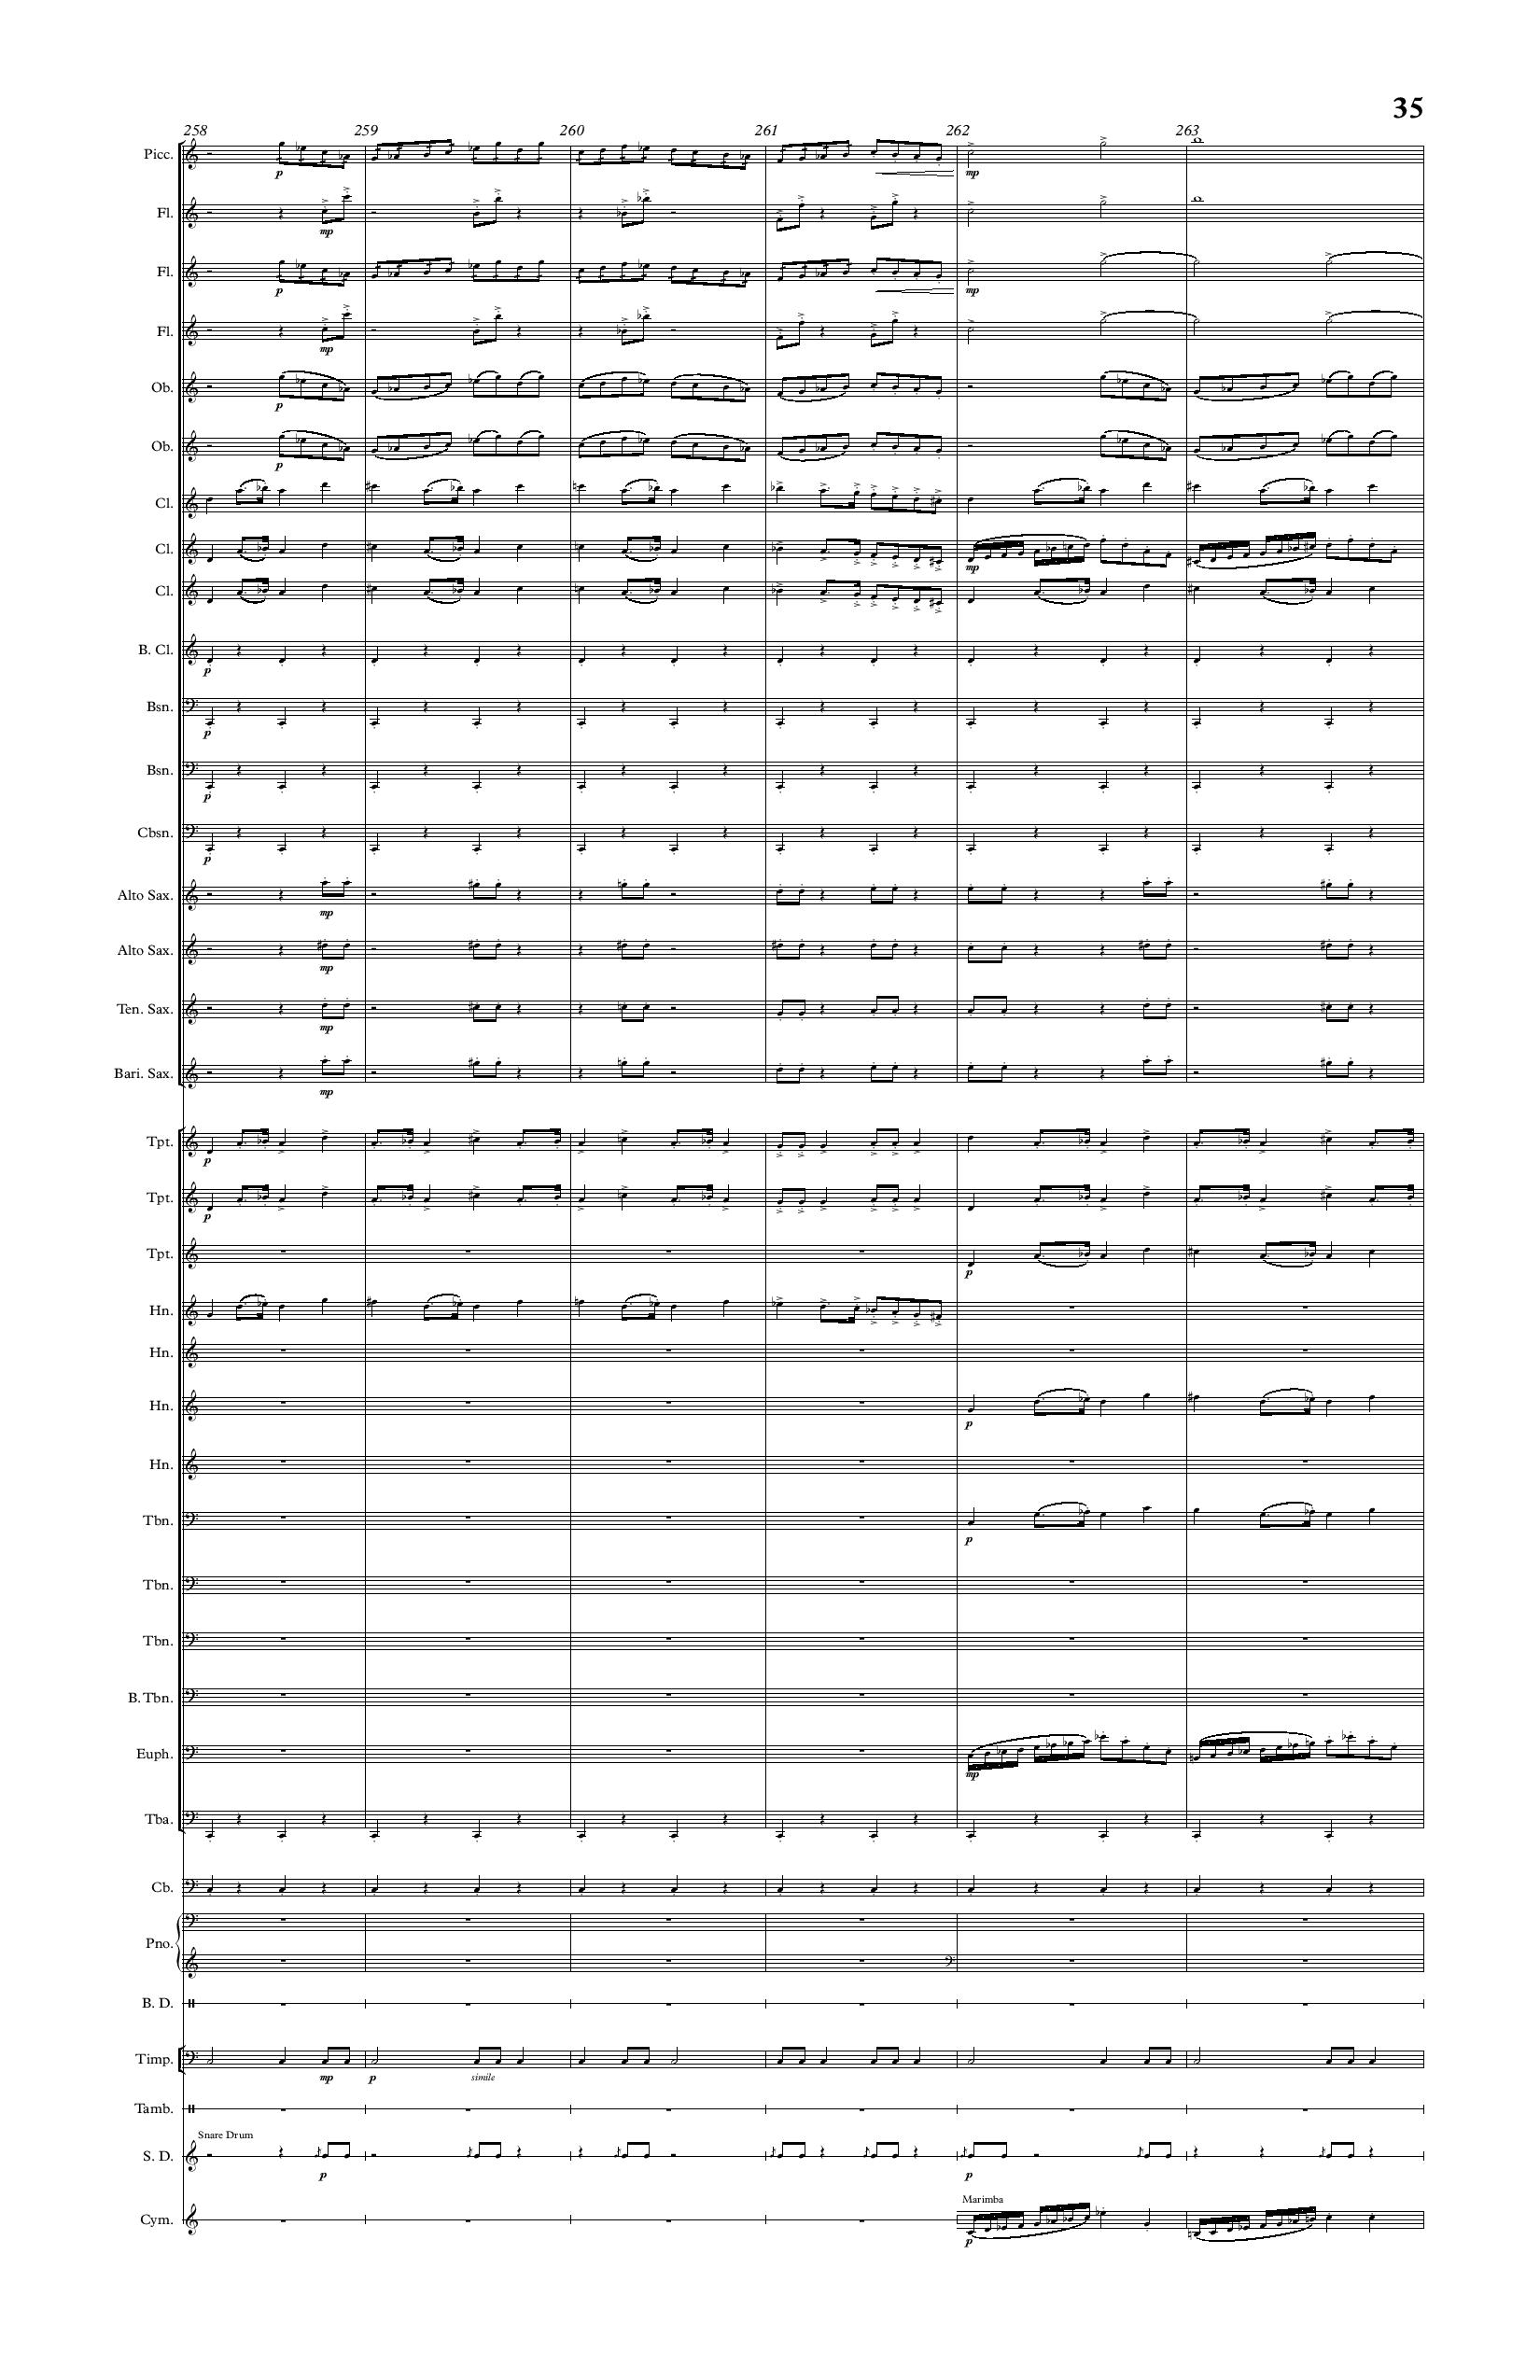 Rupture Full Transposed Score - Full Score (1)-page-035